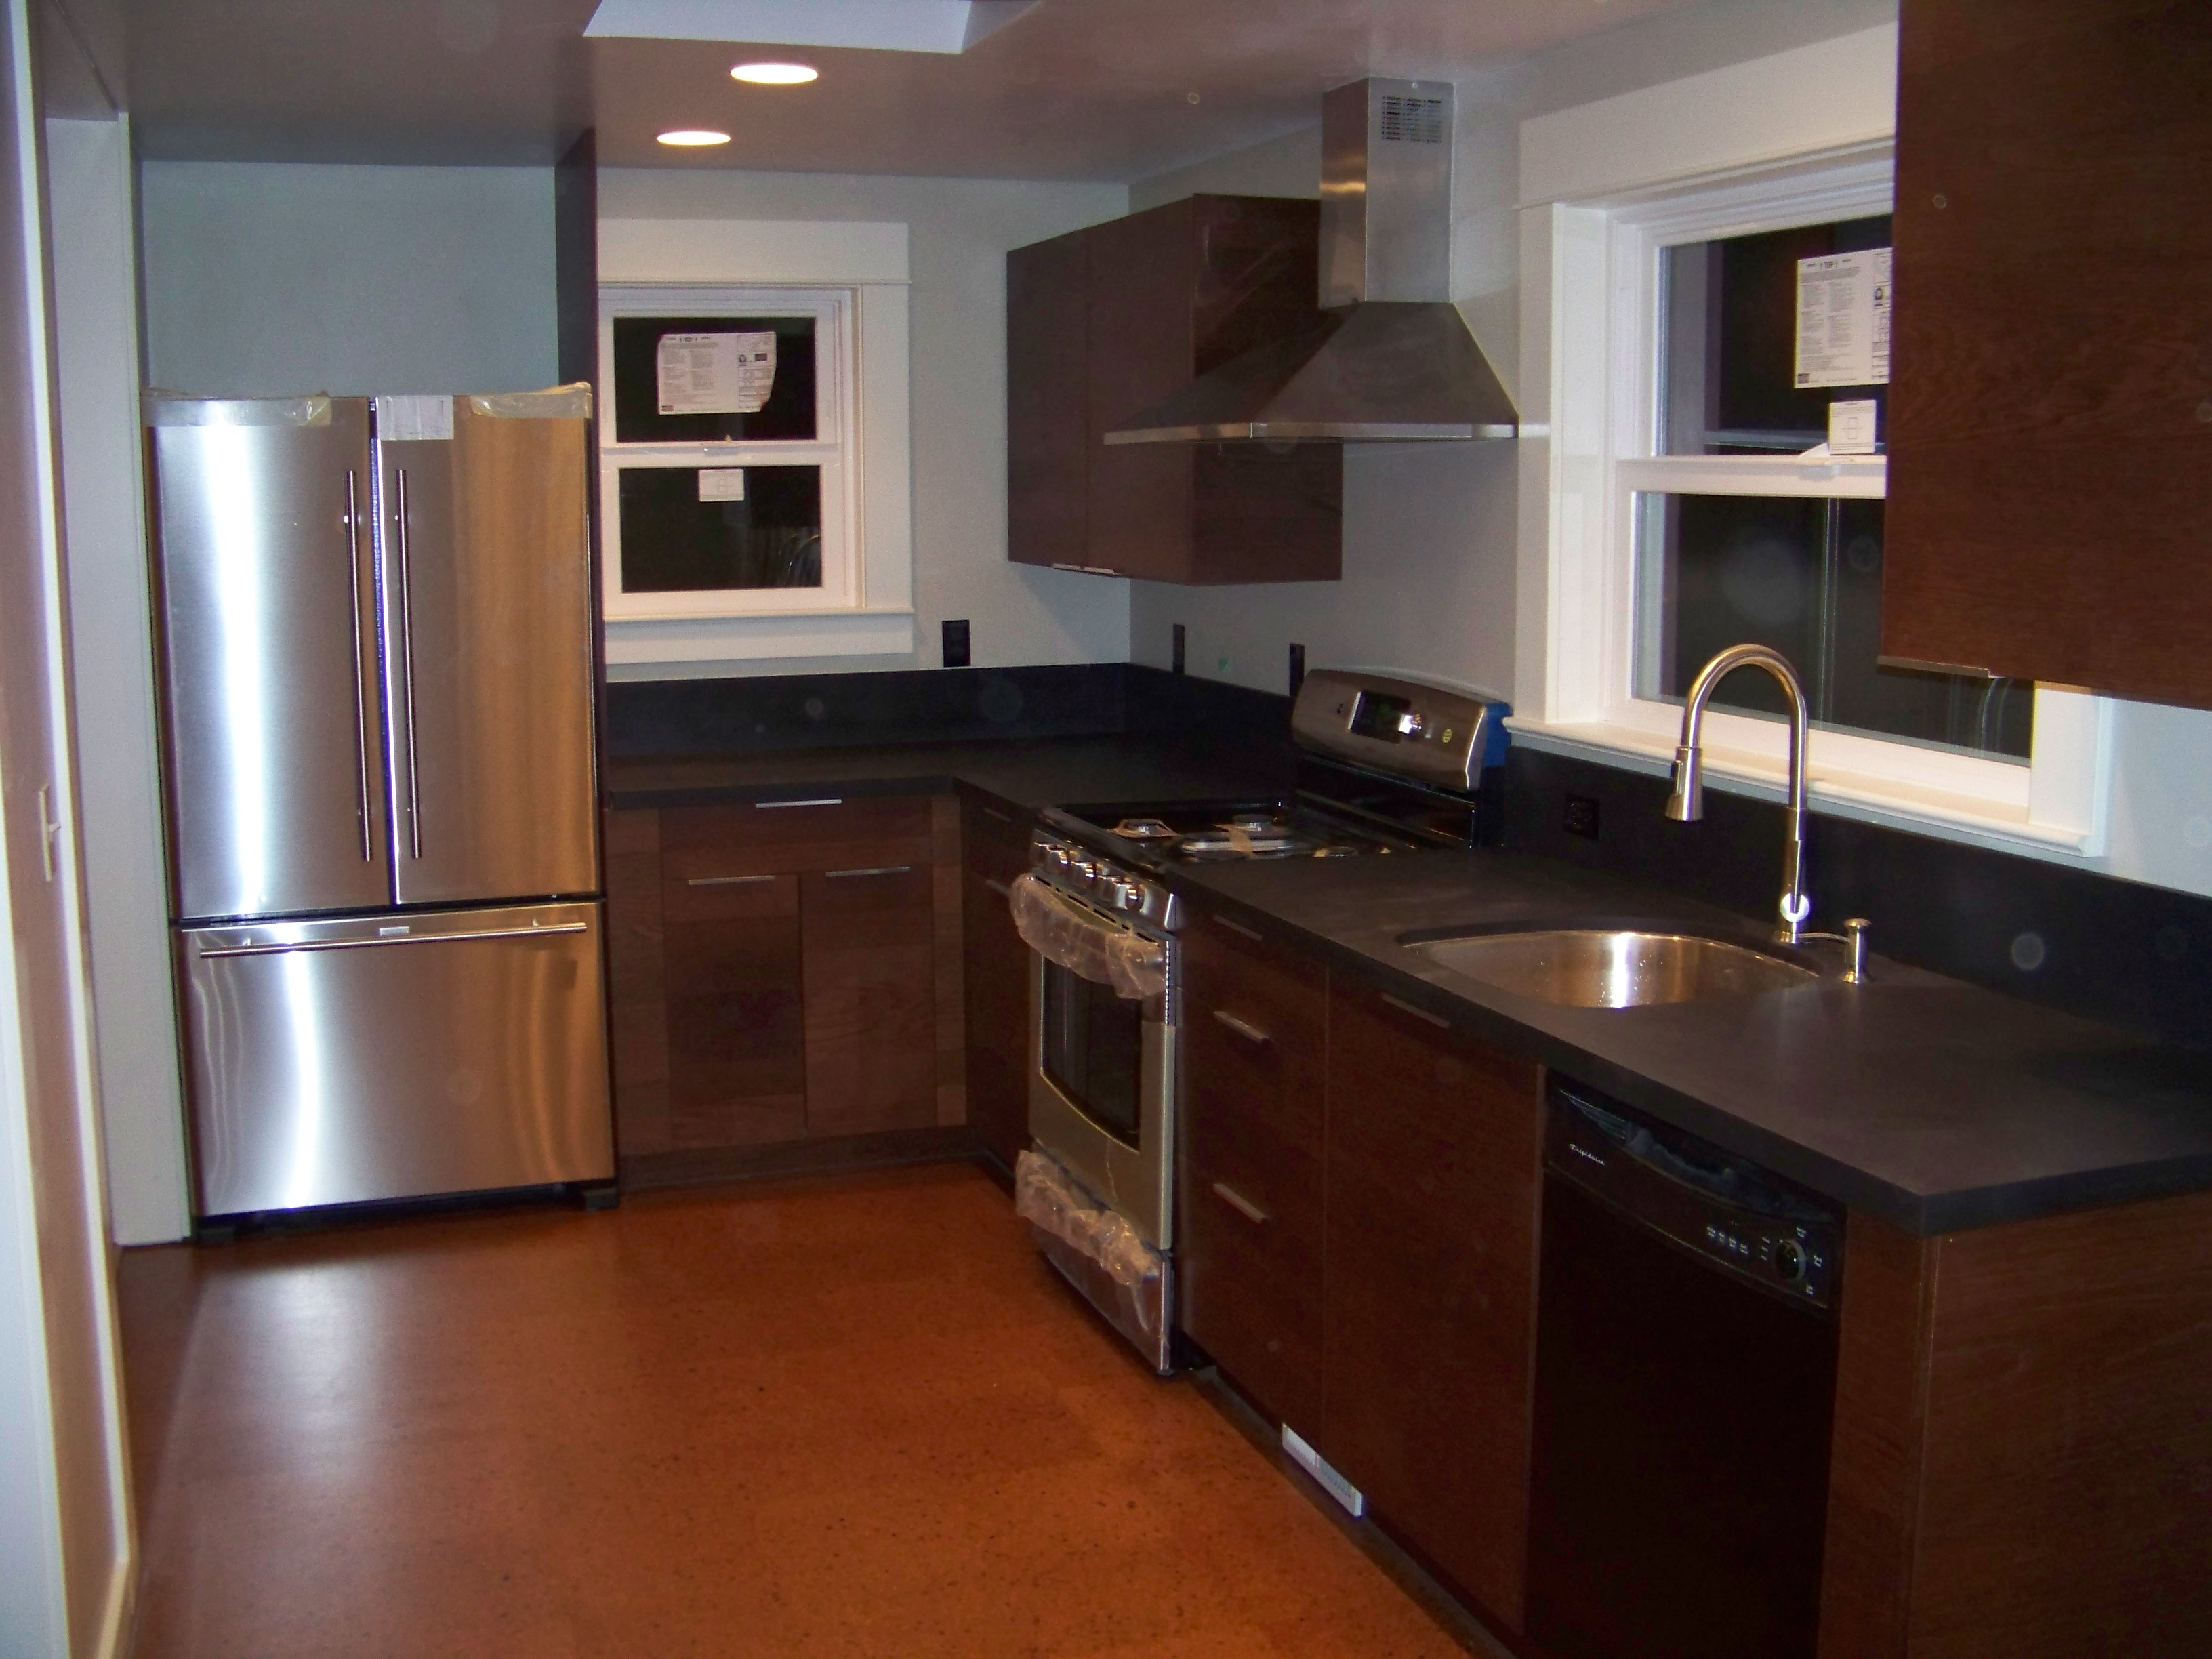 cork floor kitchen do it yourself cabinets flooring right arm construction home remodeling blog